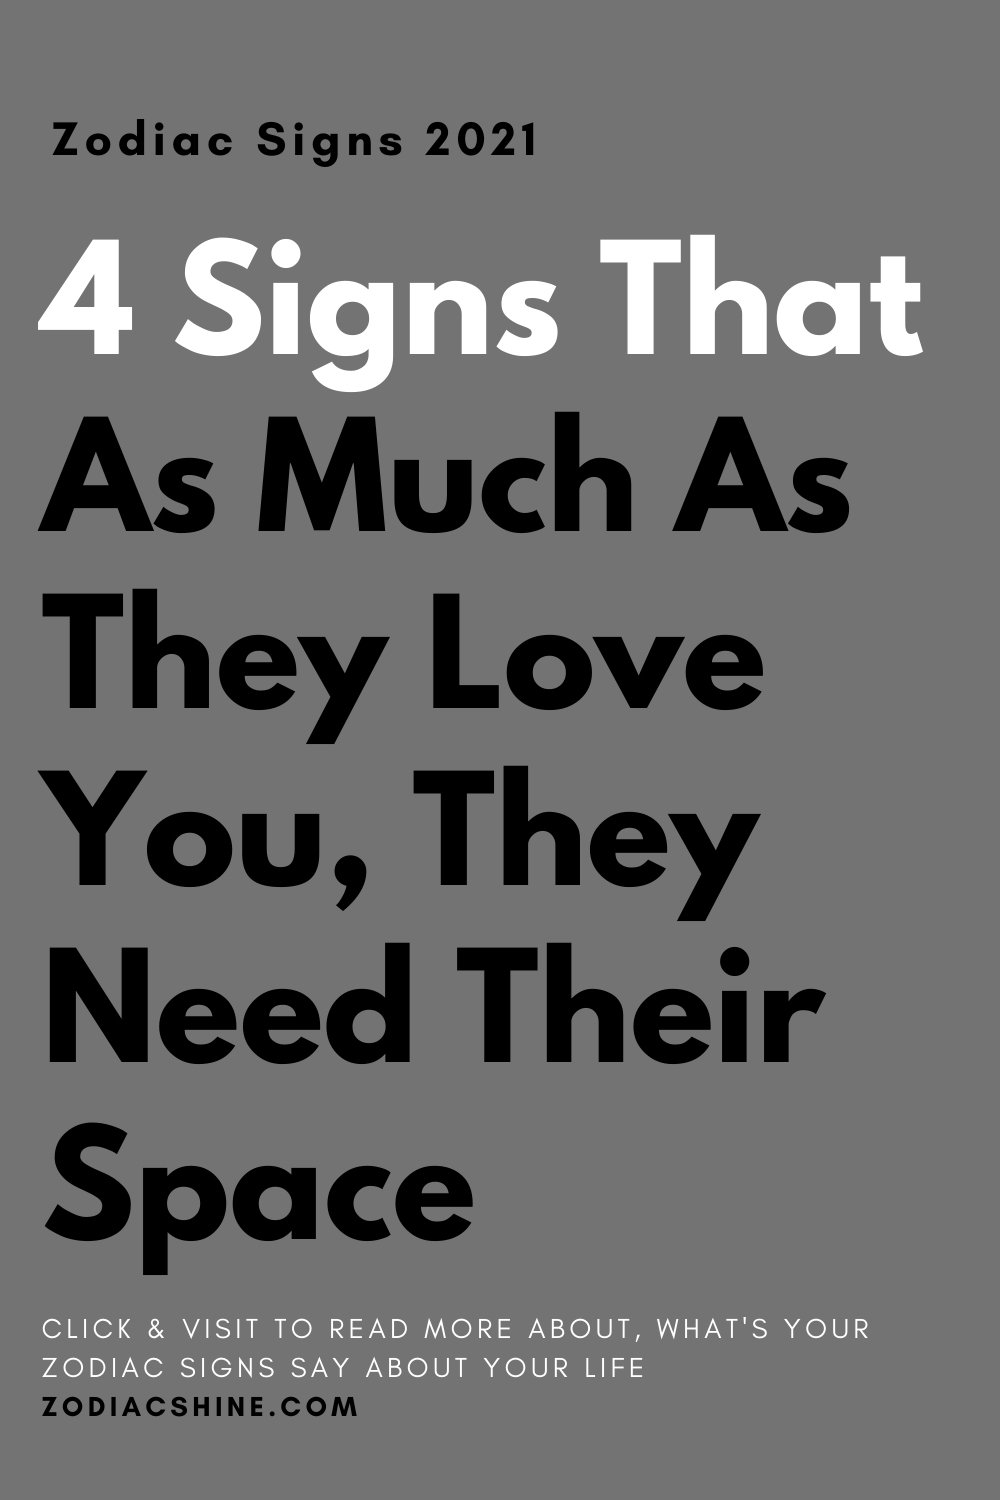 4 Signs That As Much As They Love You, They Need Their Space